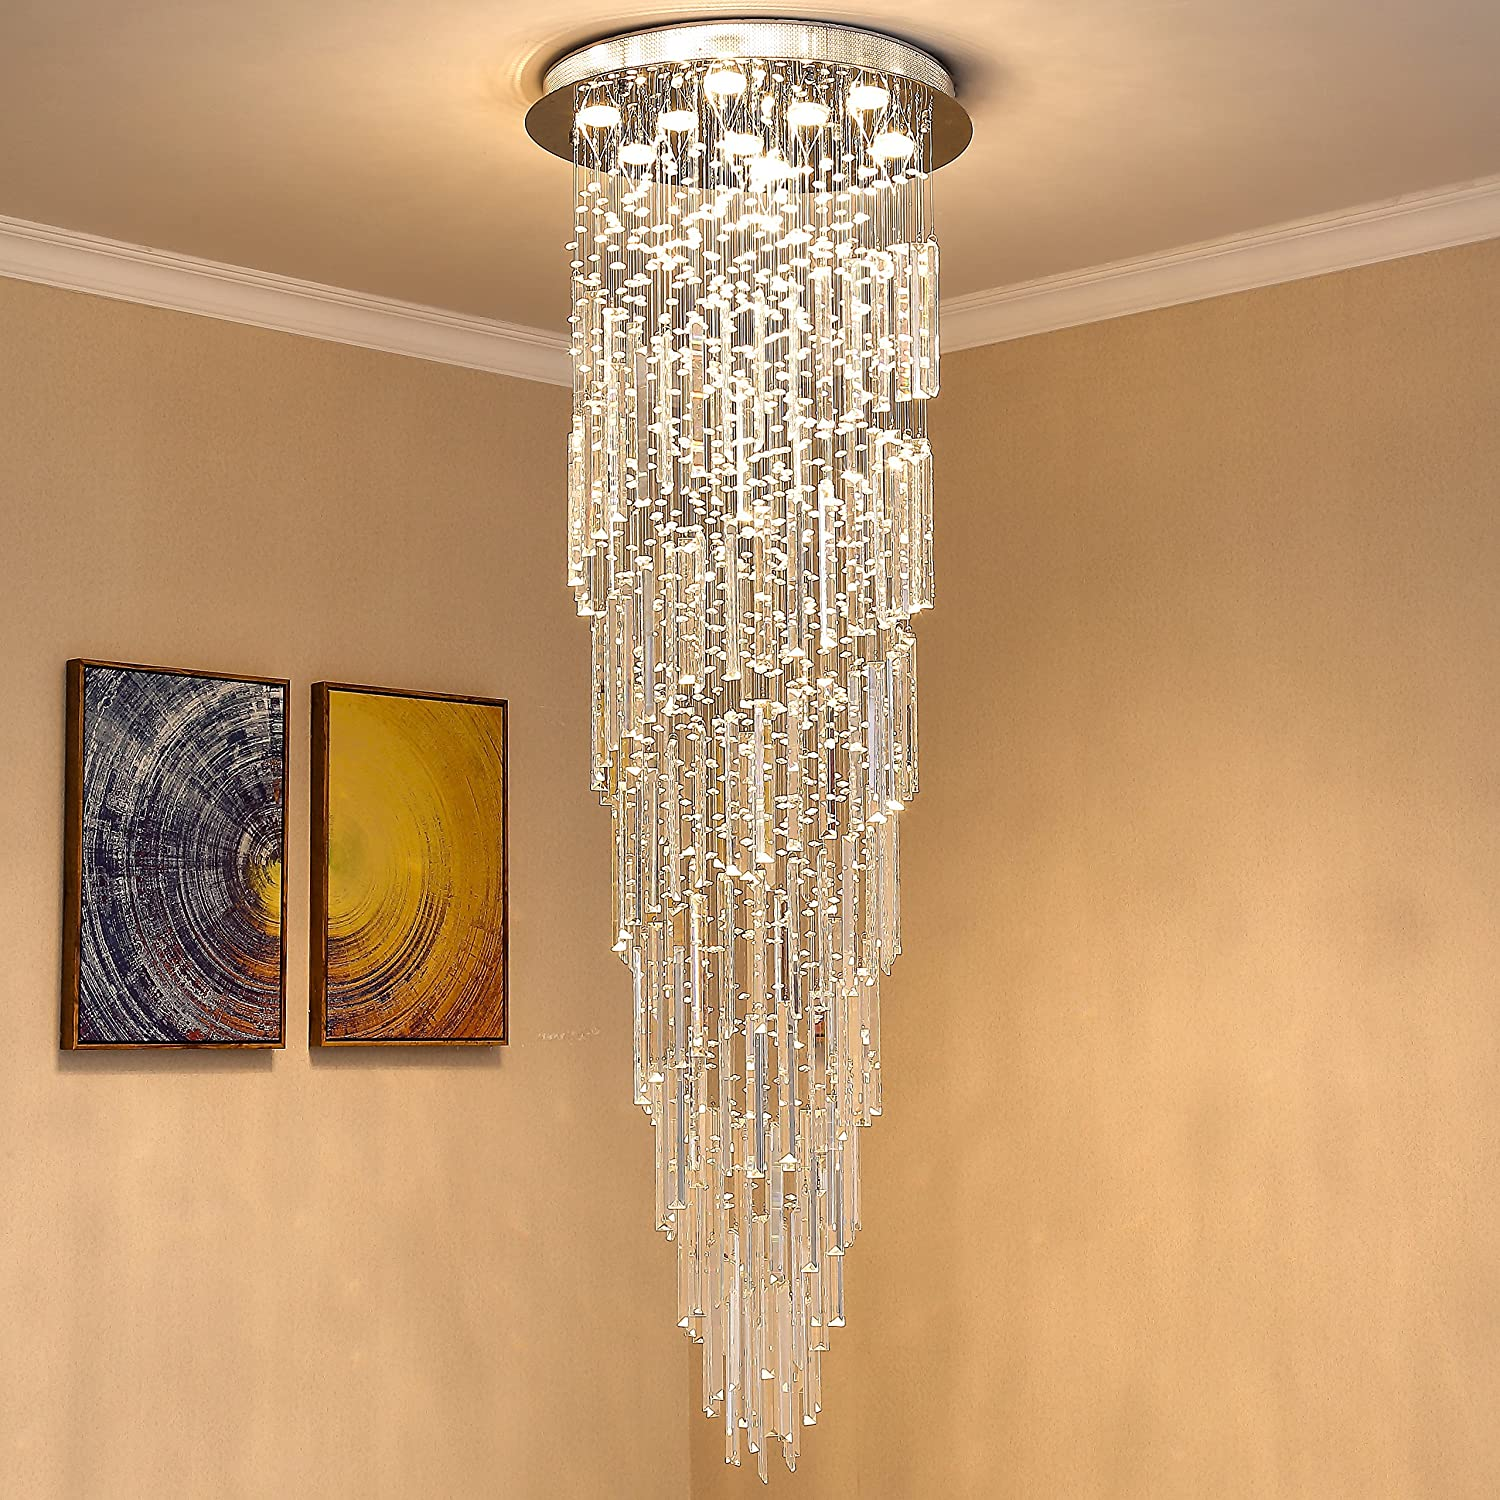 Saint mossi modern k9 crystal spral raindrop chandelier lighting flush mount led ceiling light fixture pendant lamp for dining room bathroom bedroom